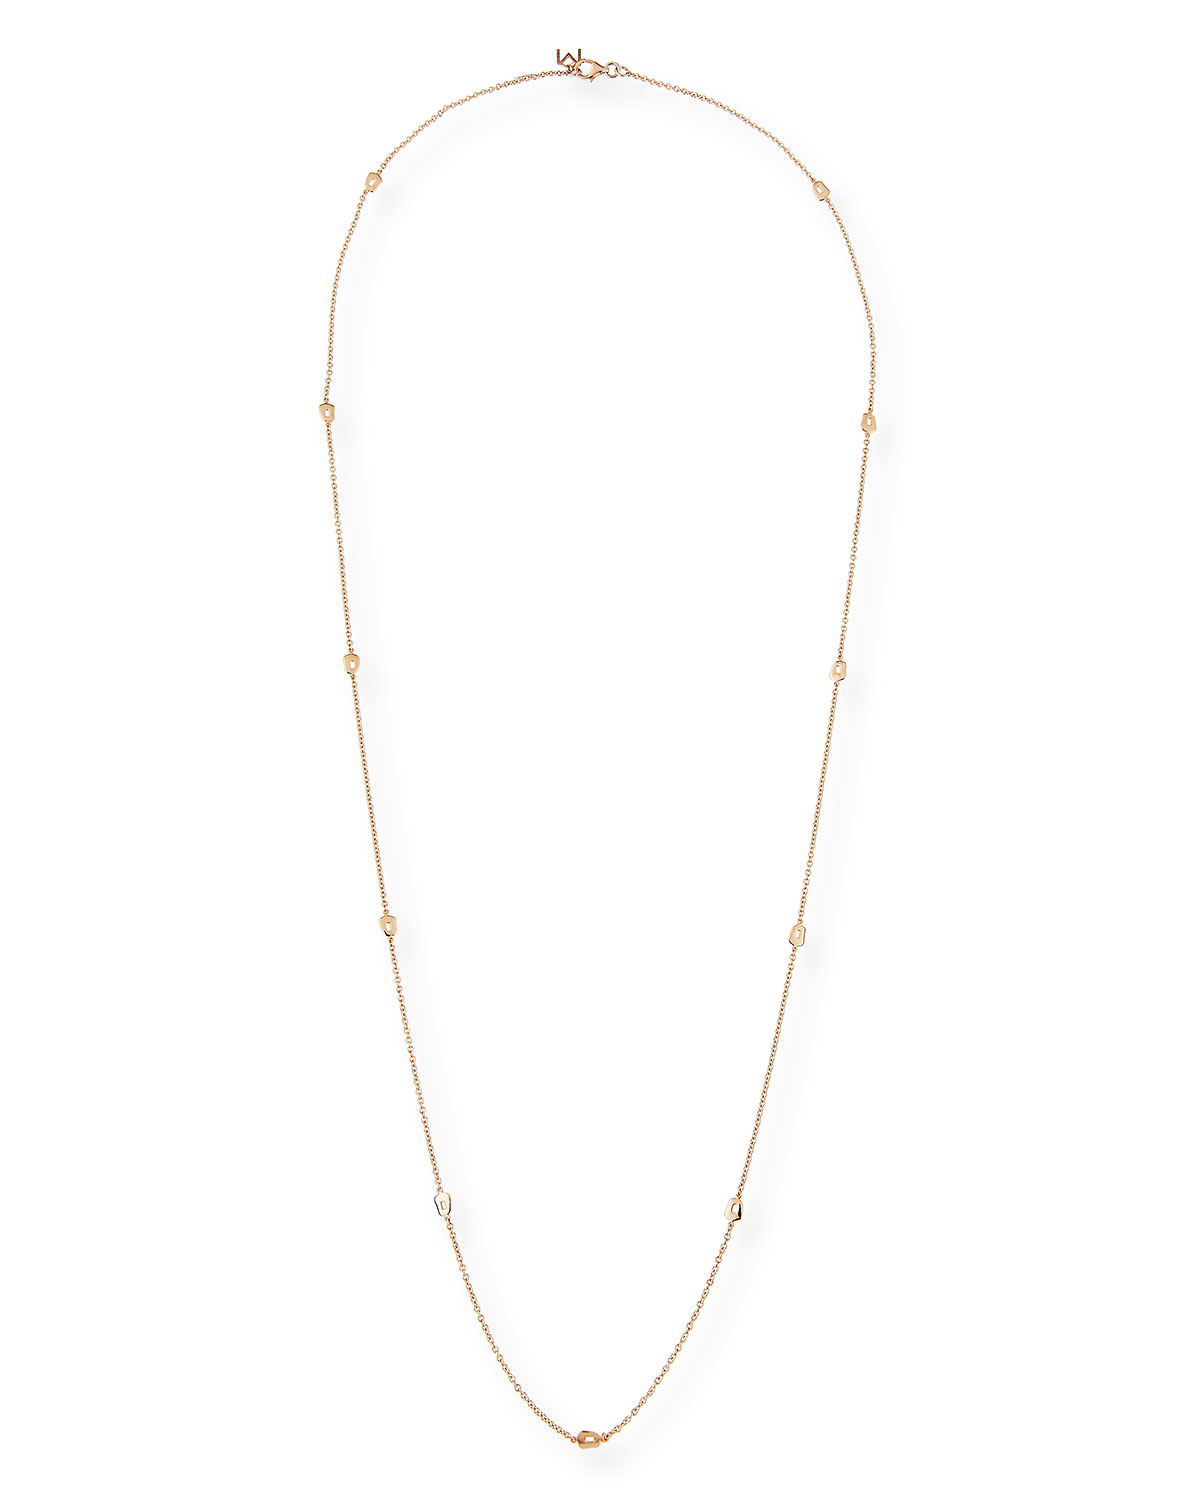 Mattioli Puzzle Six-Strand Mother-of-Pearl Necklace in 18K Rose Gold VJeWc55gi